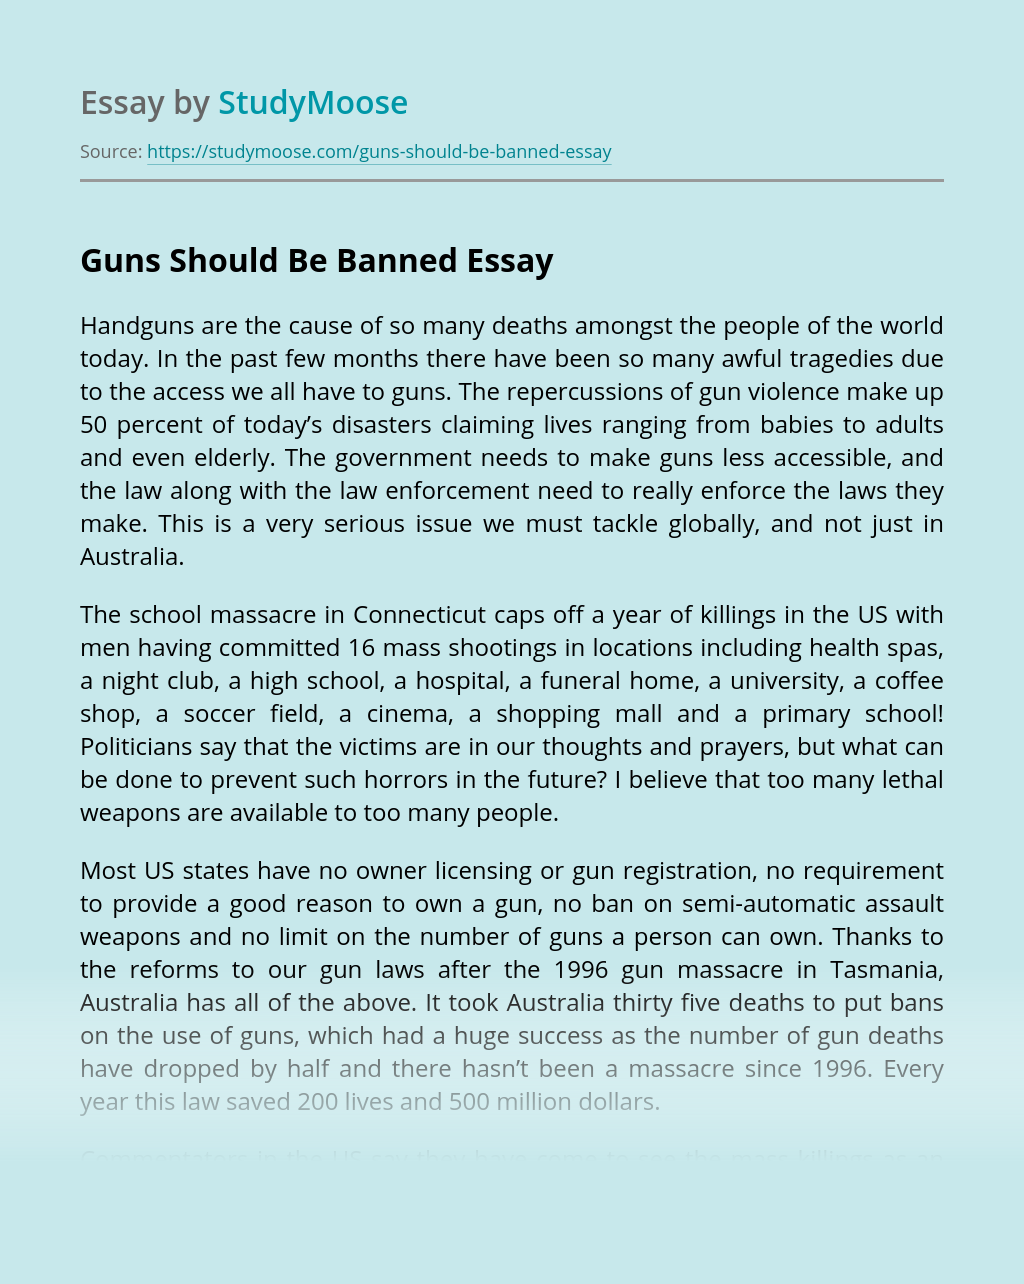 Guns Should Be Banned